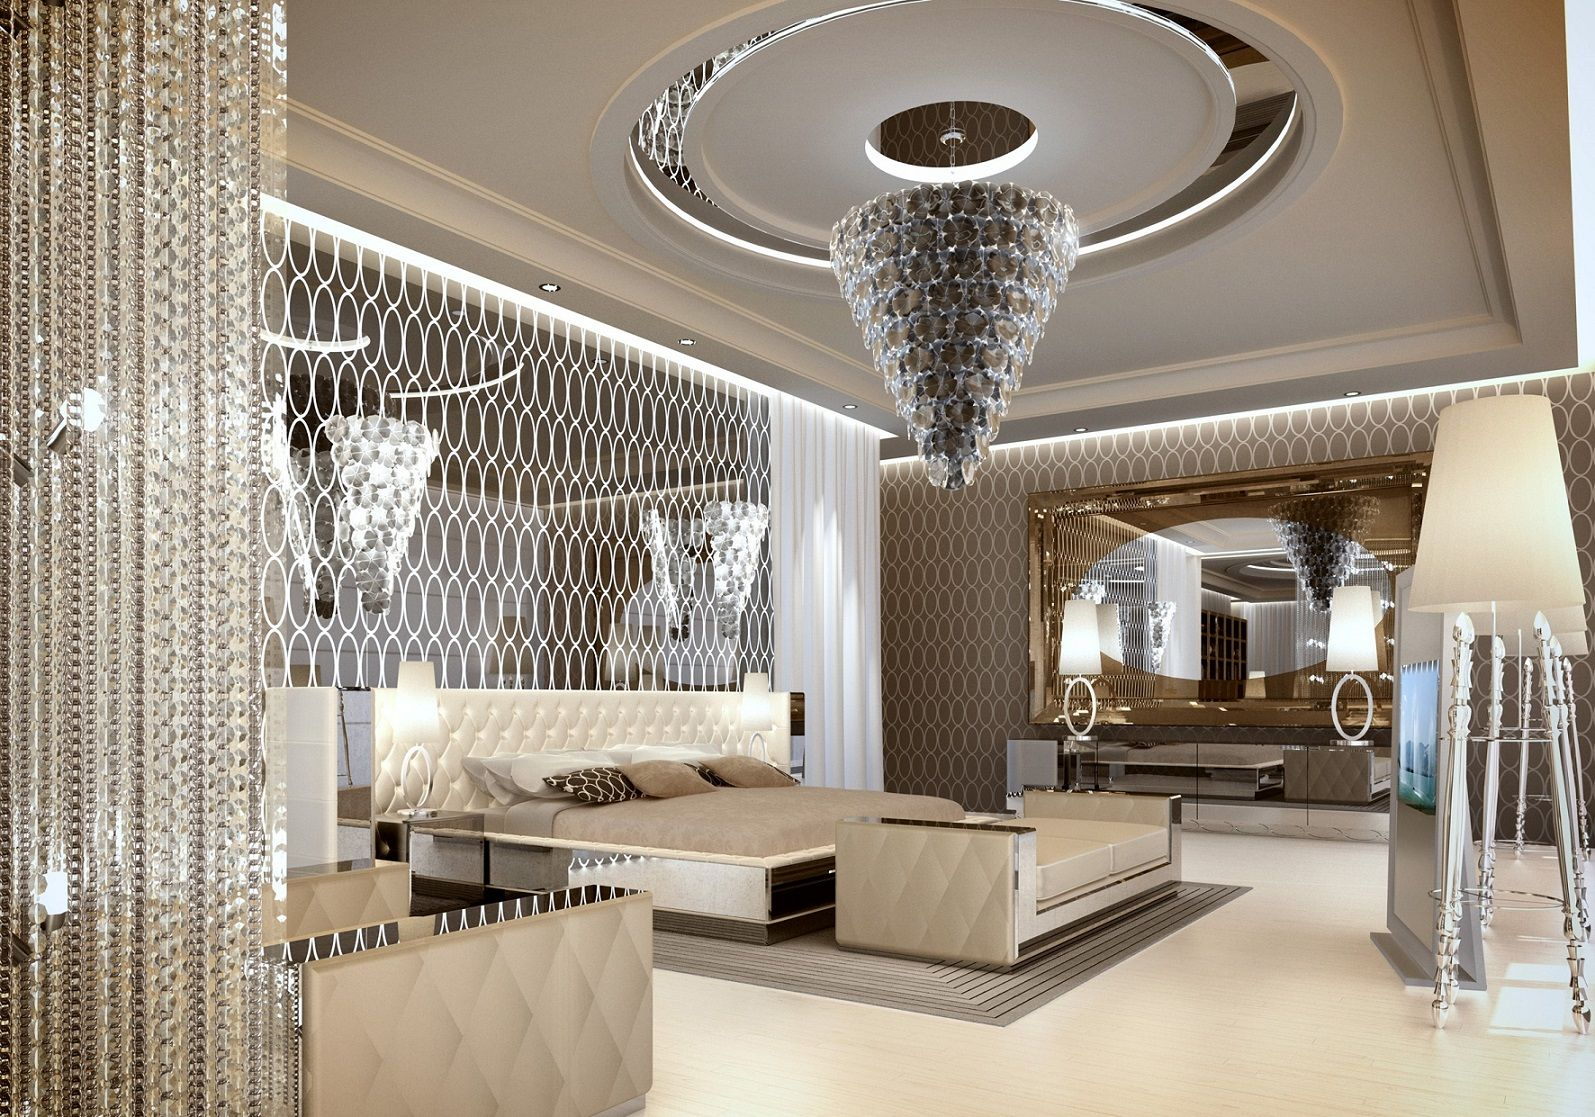 Ultra high end hotel signature collection designer for Beautiful home lighting